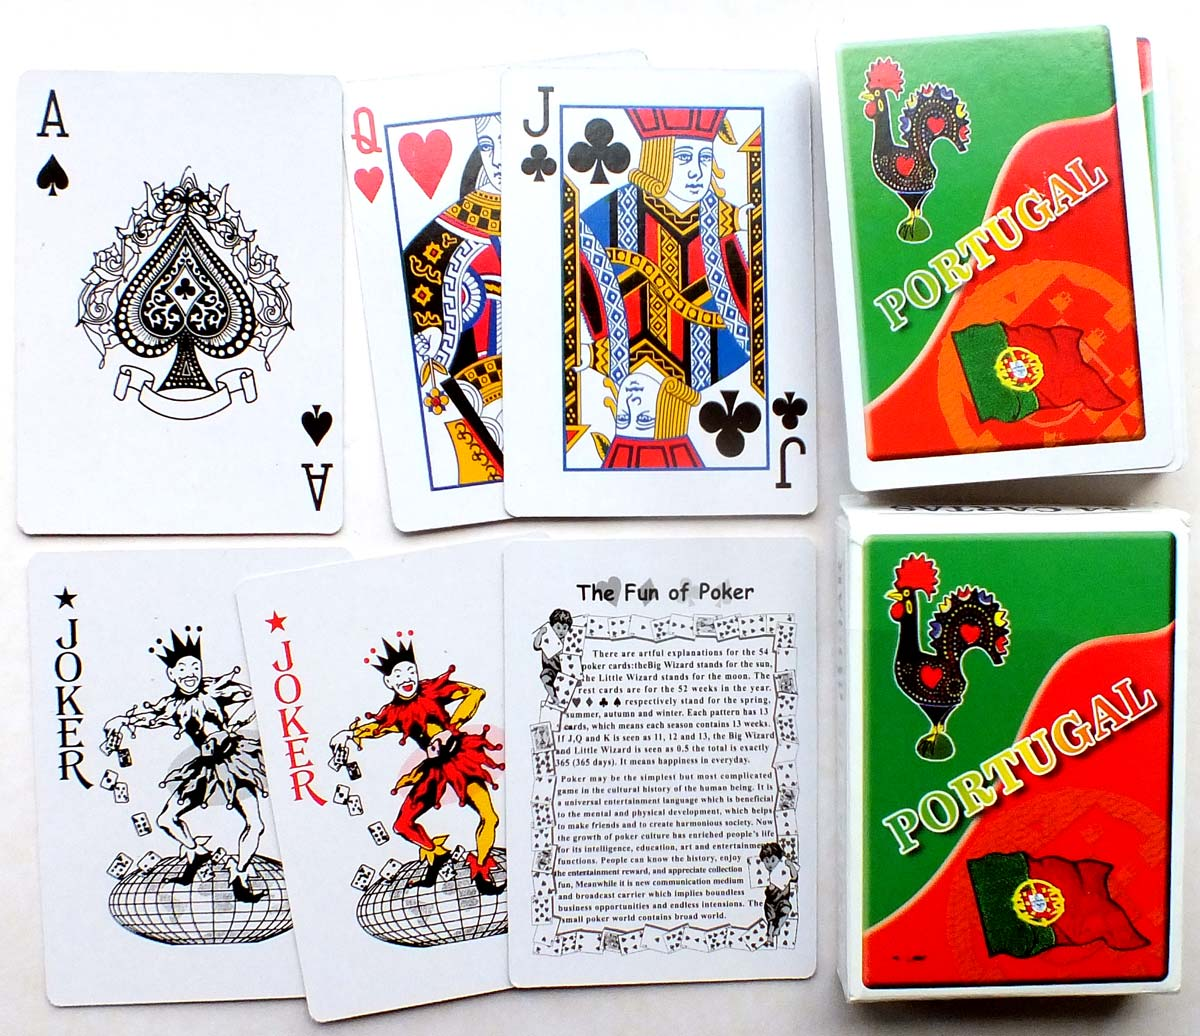 Souvenir of Portugal playing cards from a tourist shop, 2019